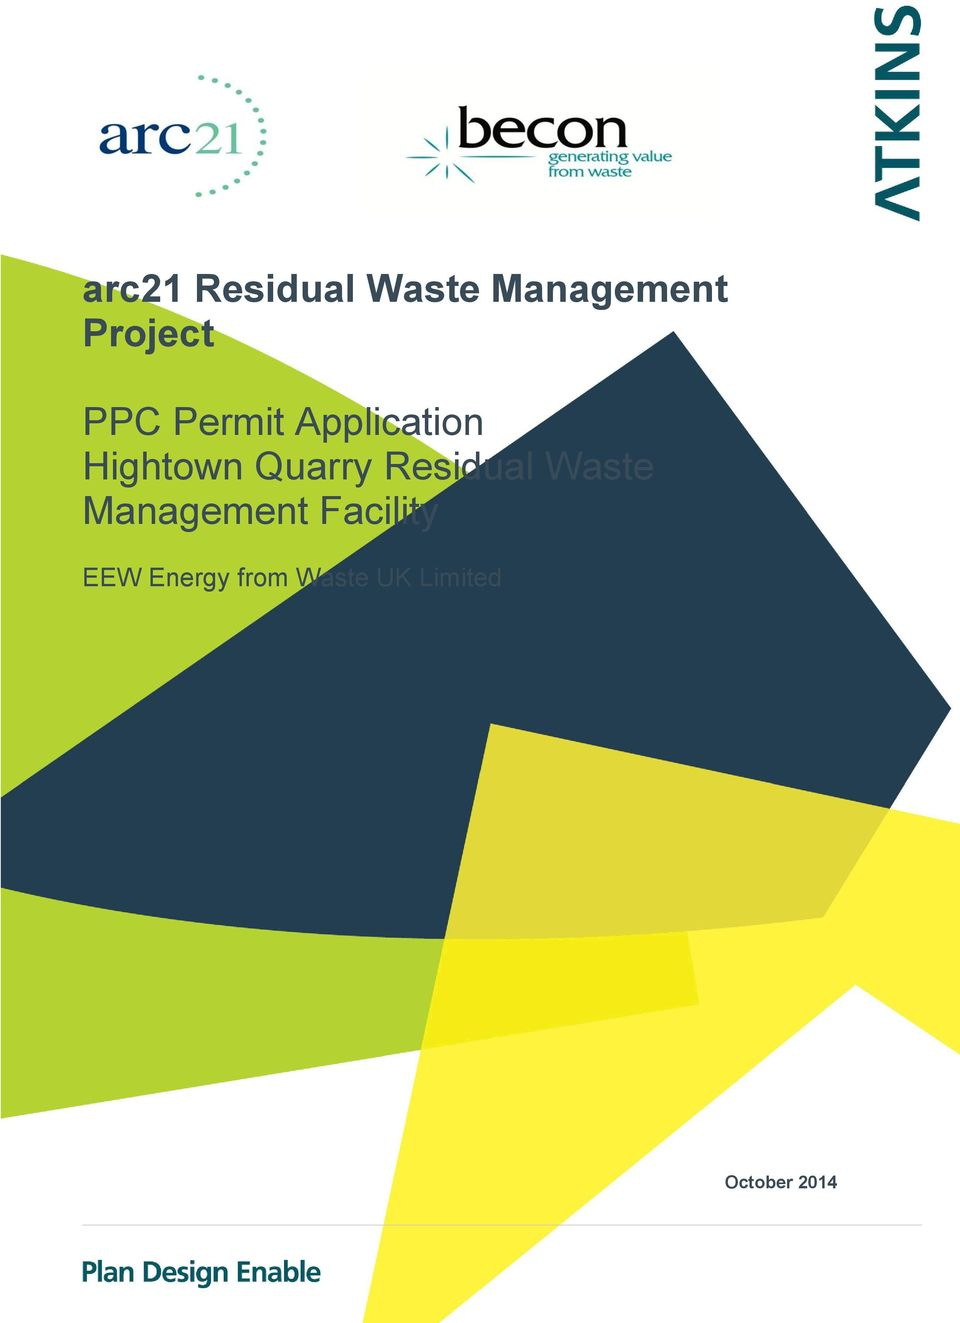 Residual Waste Management Facility EEW